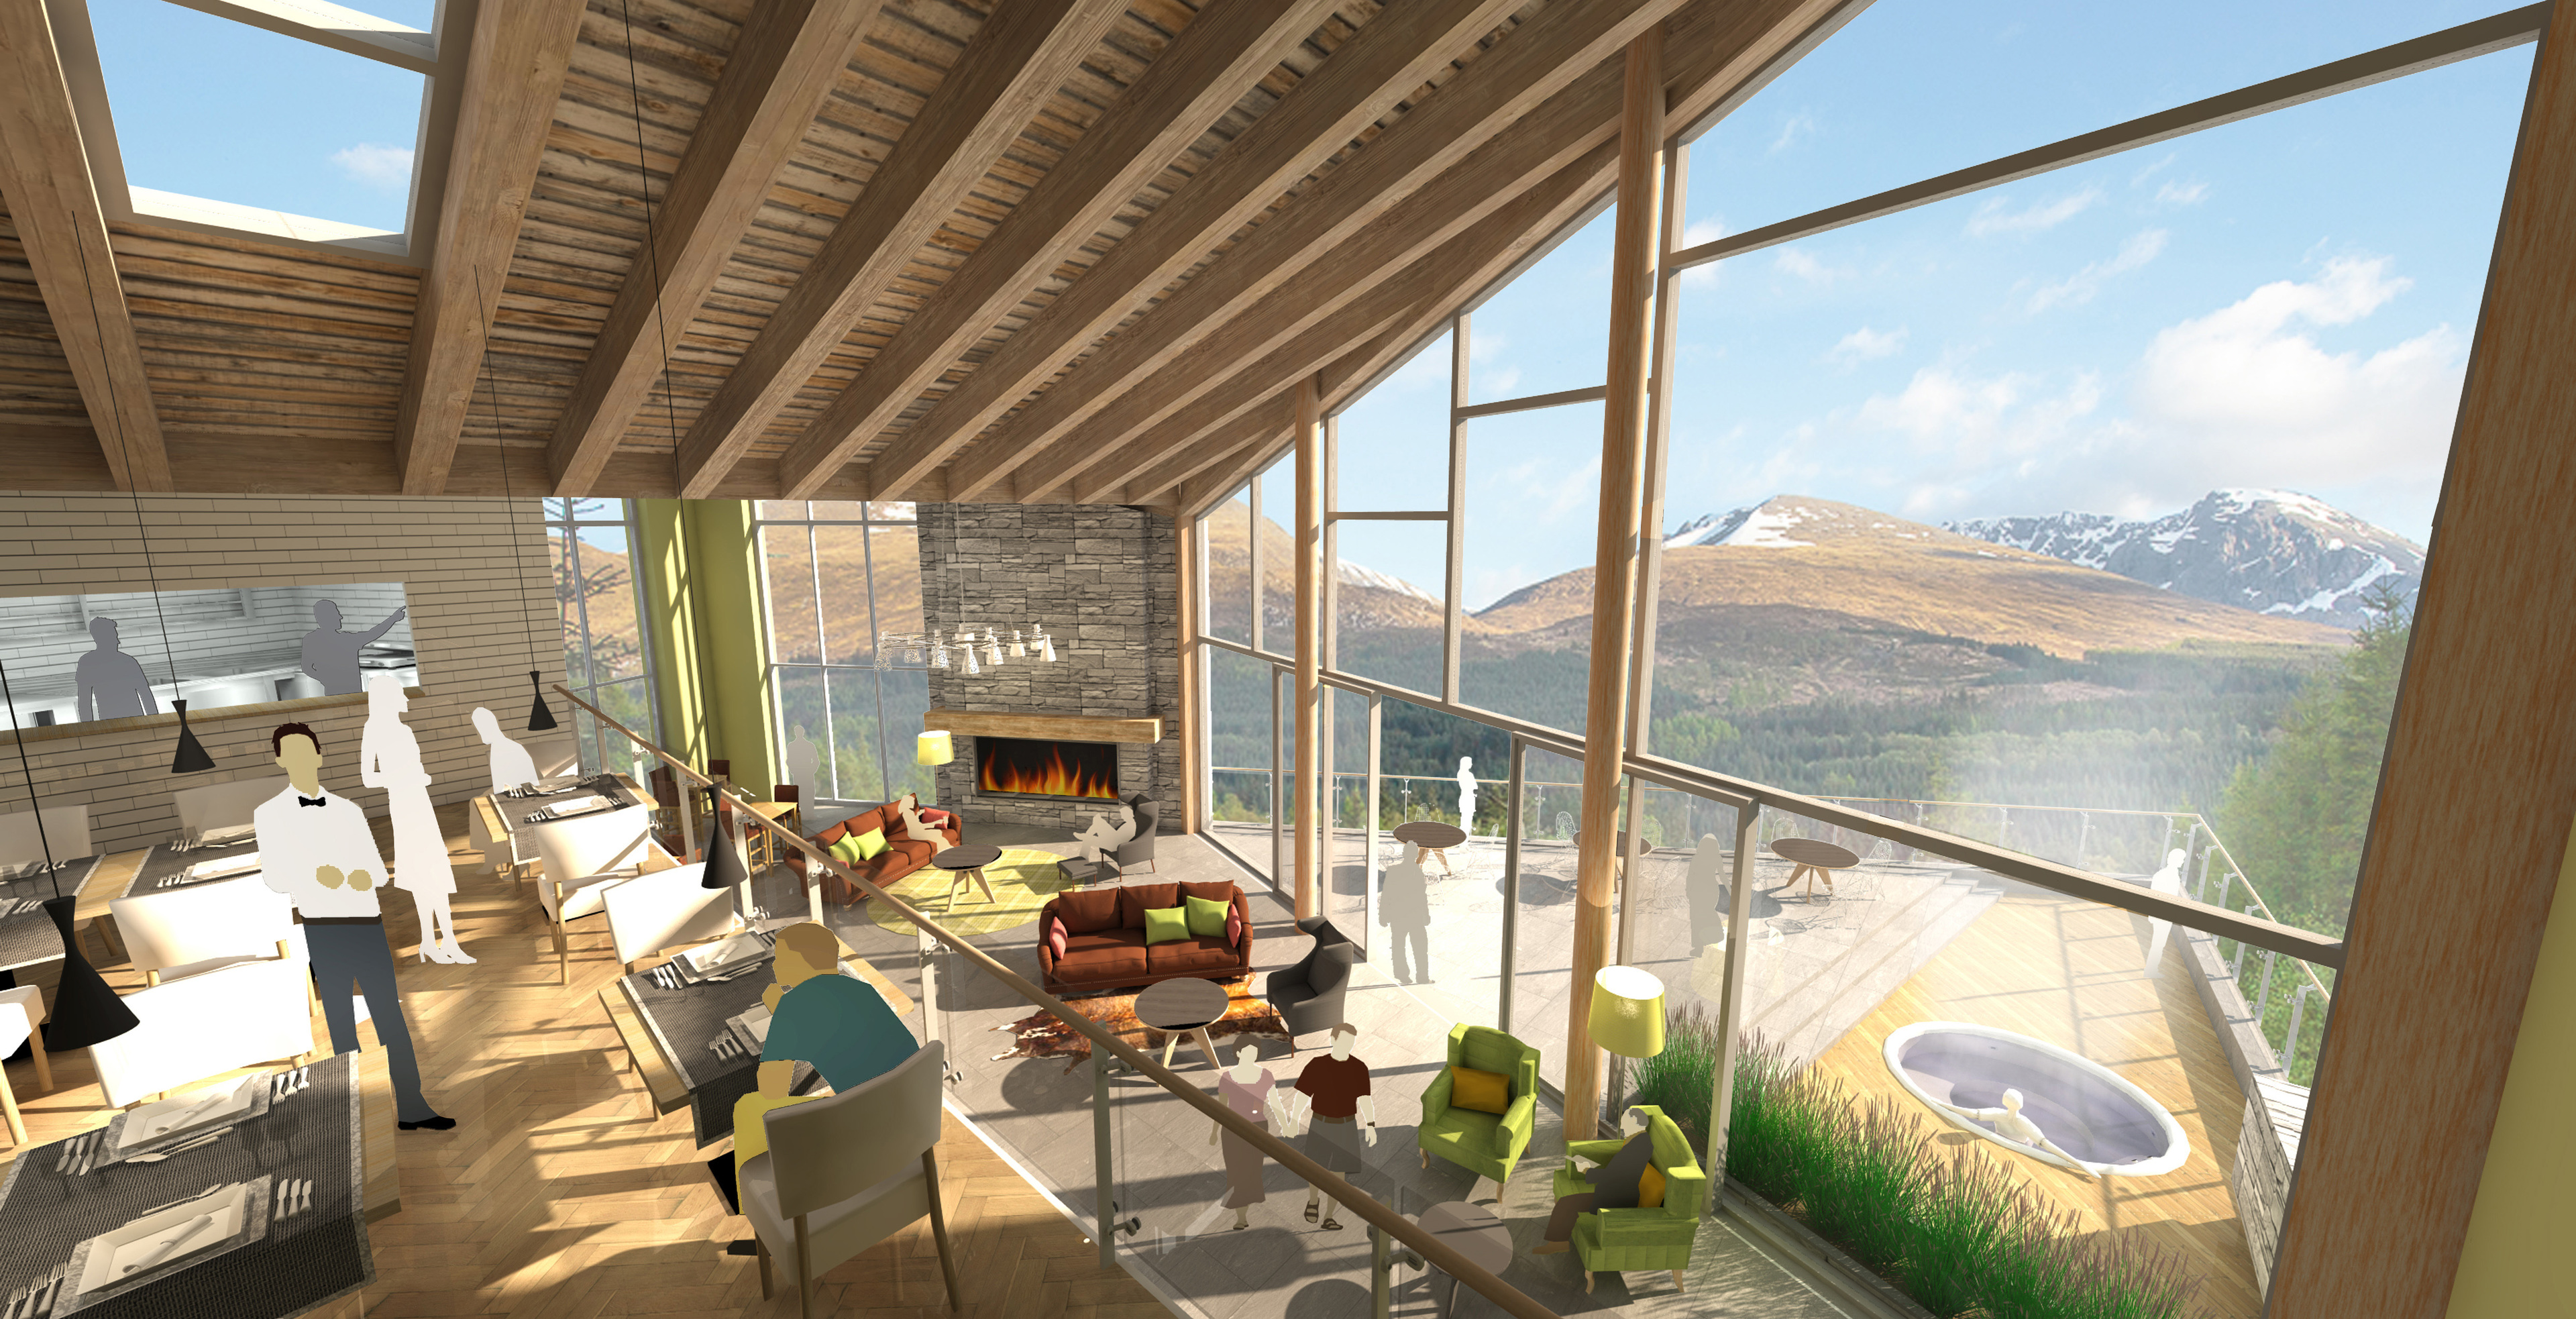 Artist's impression of the interior of the five-start resort hotel with views of Ben Nevis